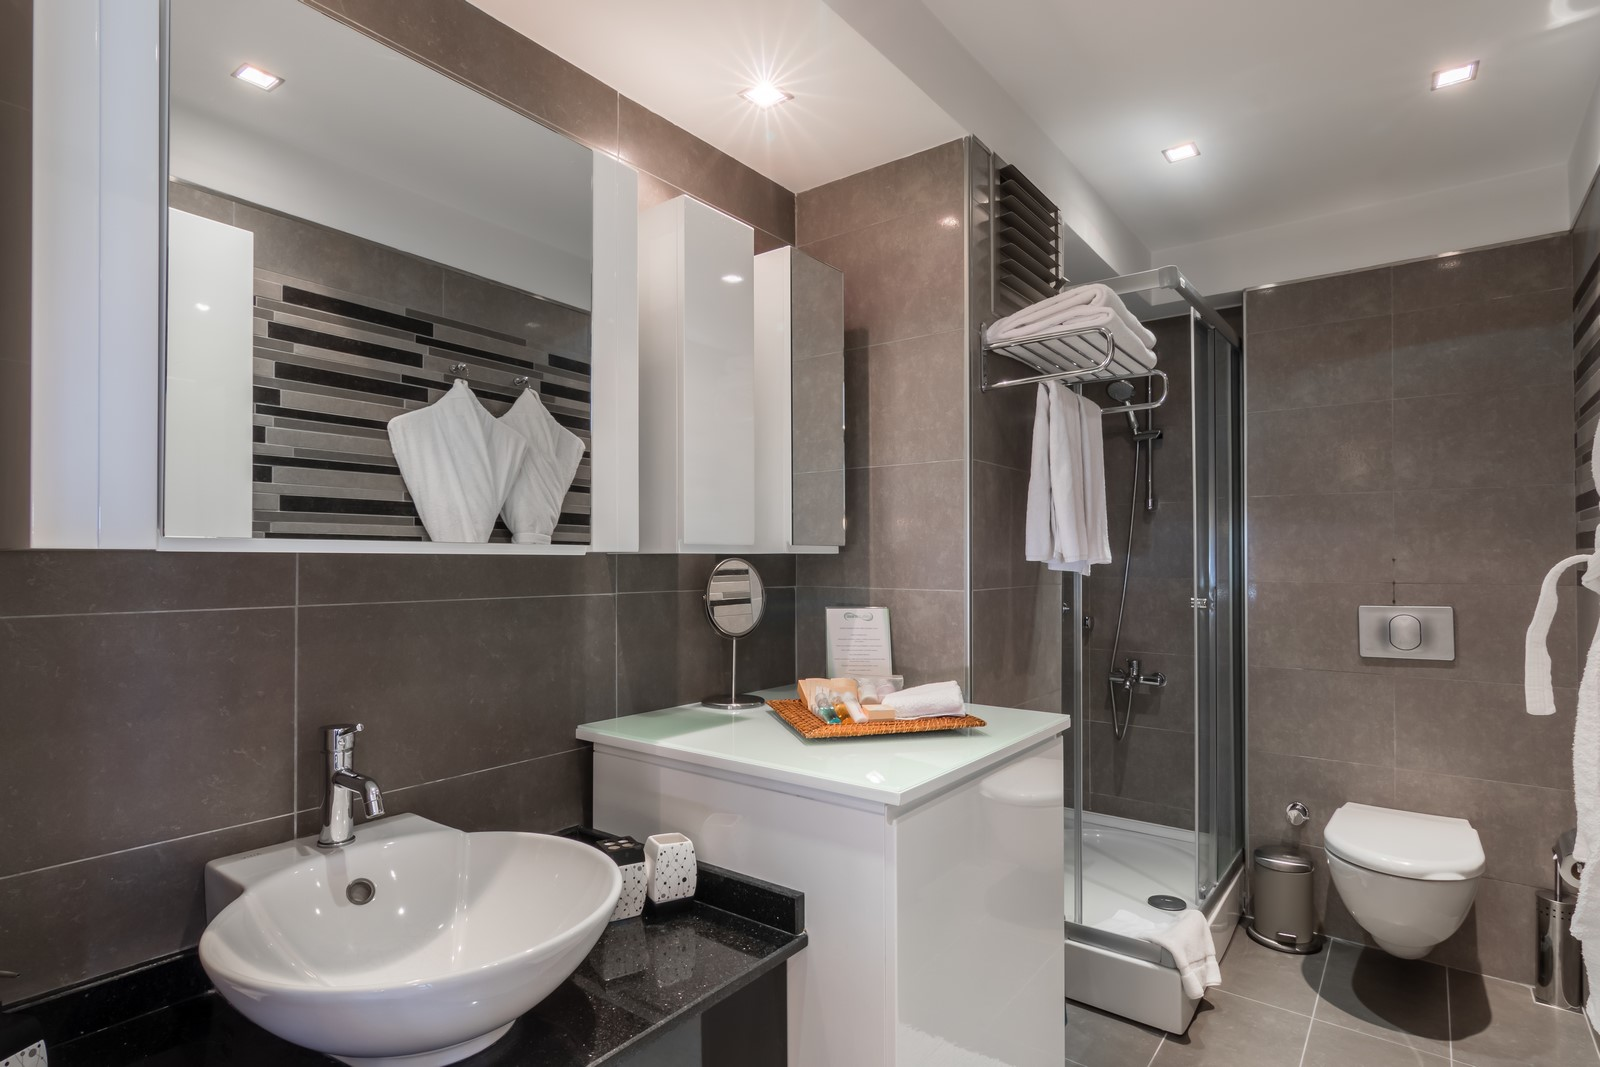 Bathroom at Aura Suites - Citybase Apartments